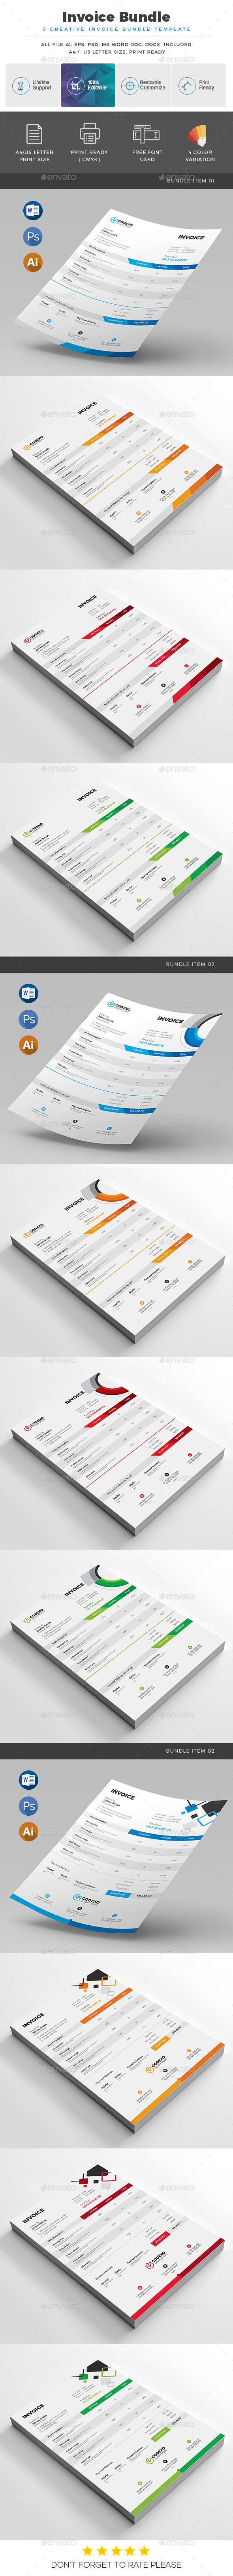 GraphicRiver Invoice Bundle 20951555